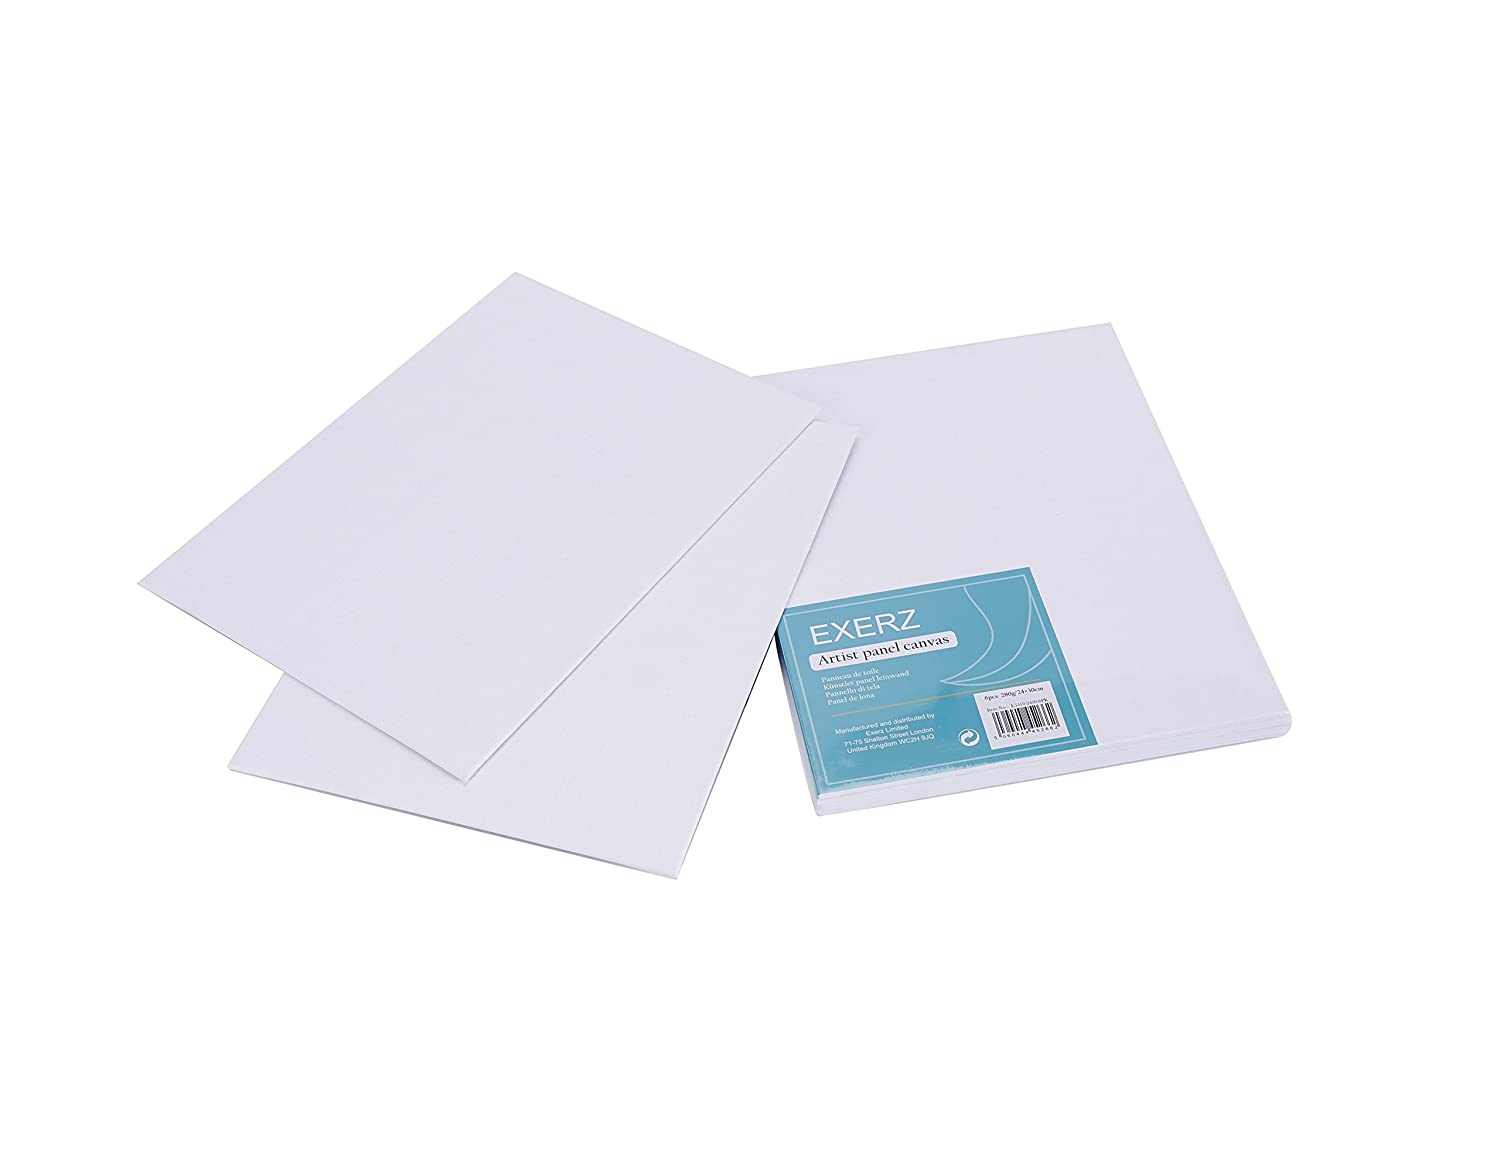 Exerz E5310-2025-12 Artist Canvas Panel 12 Pack 0.3cm Thick 25 x 20 cm 280GSM// Pre-Stretched 100/% Cotton//Blank//Triple Primed//Acid Free//Medium Grain